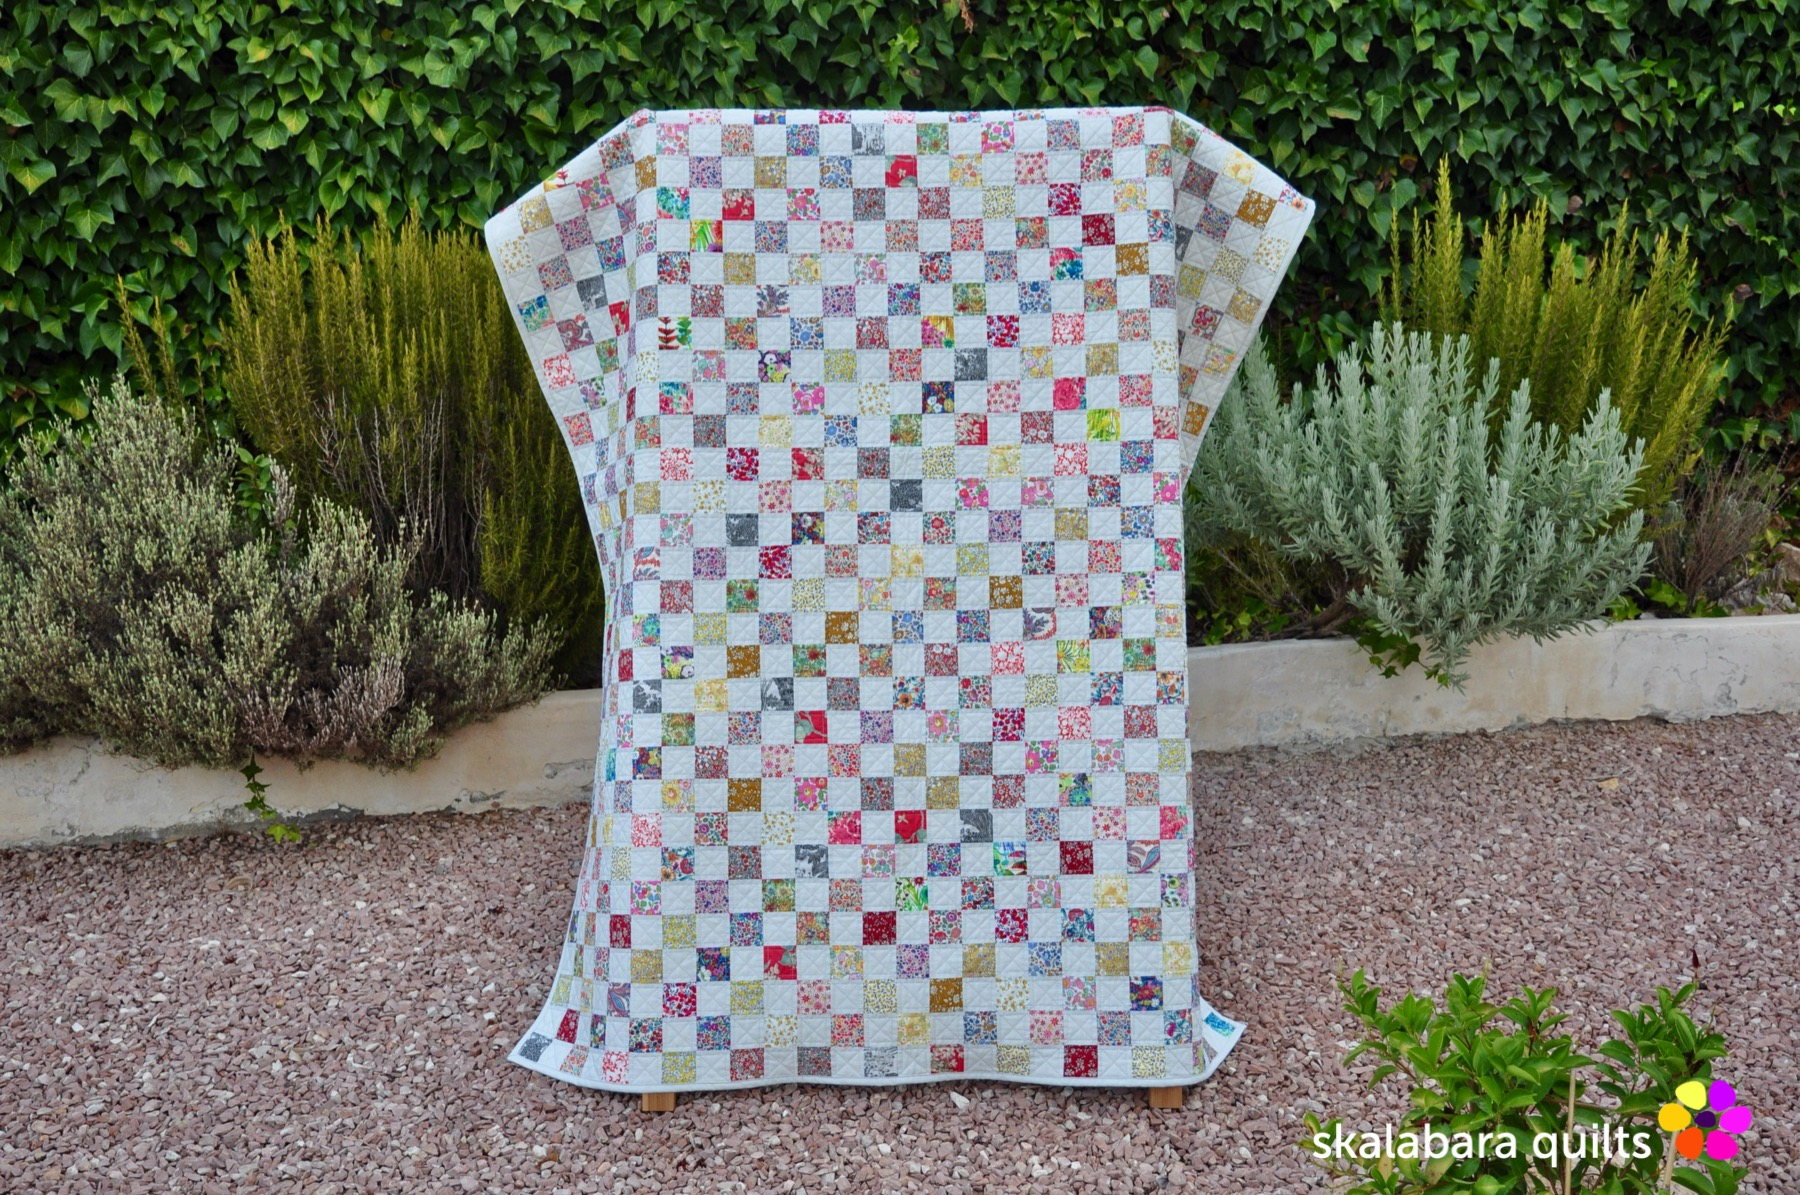 liberty checkered quilt 1 - skalabara quilts